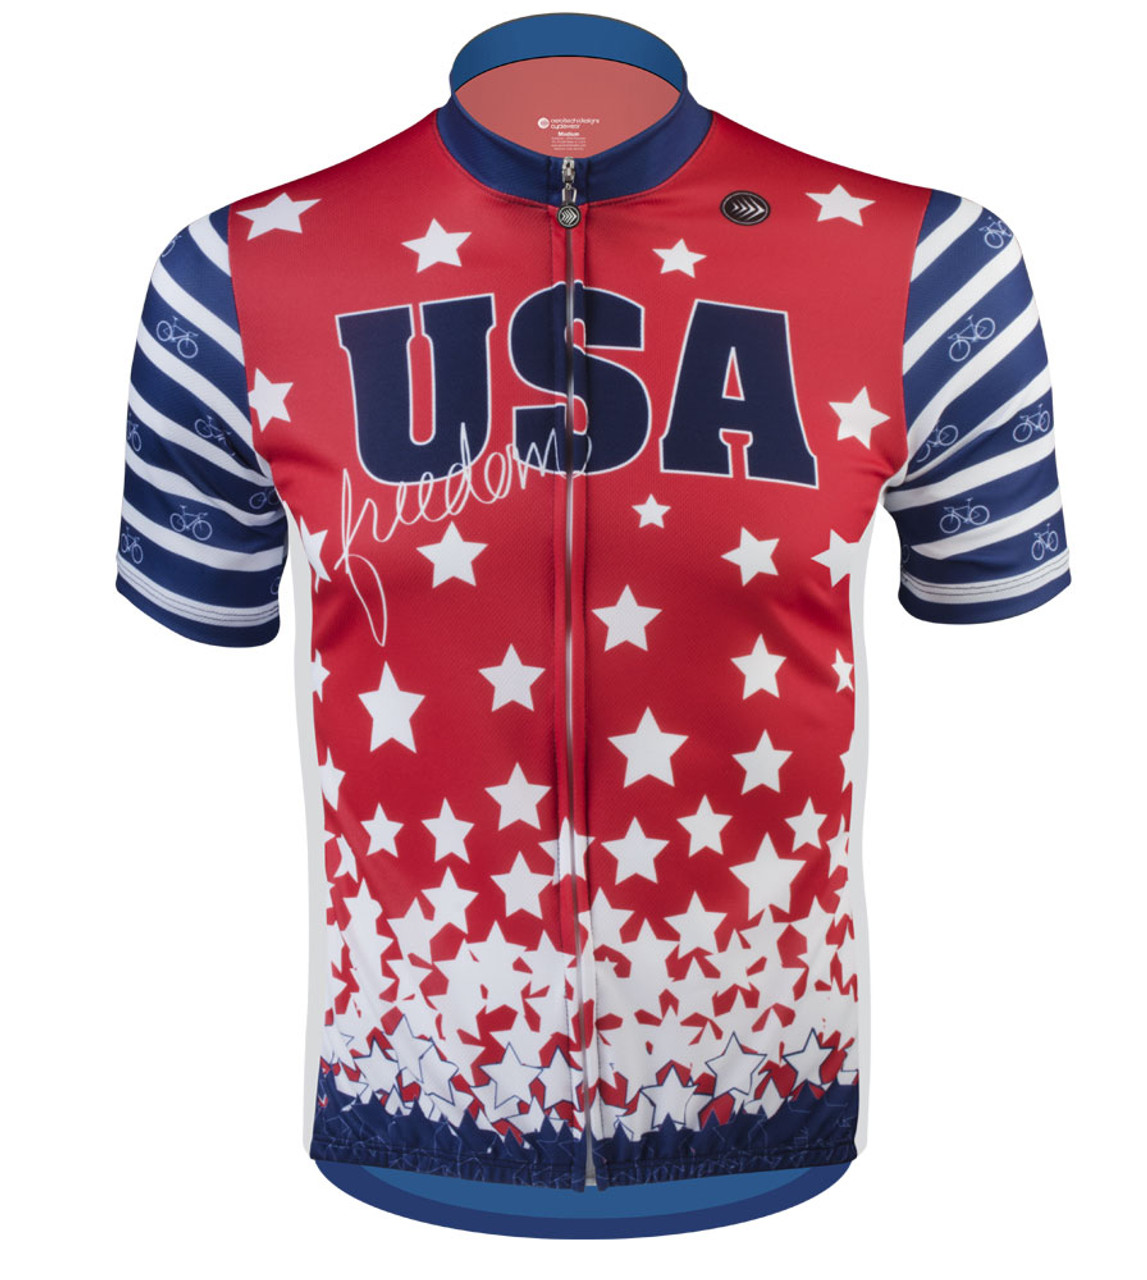 d83706d6e75 USA Made Stars and Stripes Patriotic Red White Blue Cycling Jersey